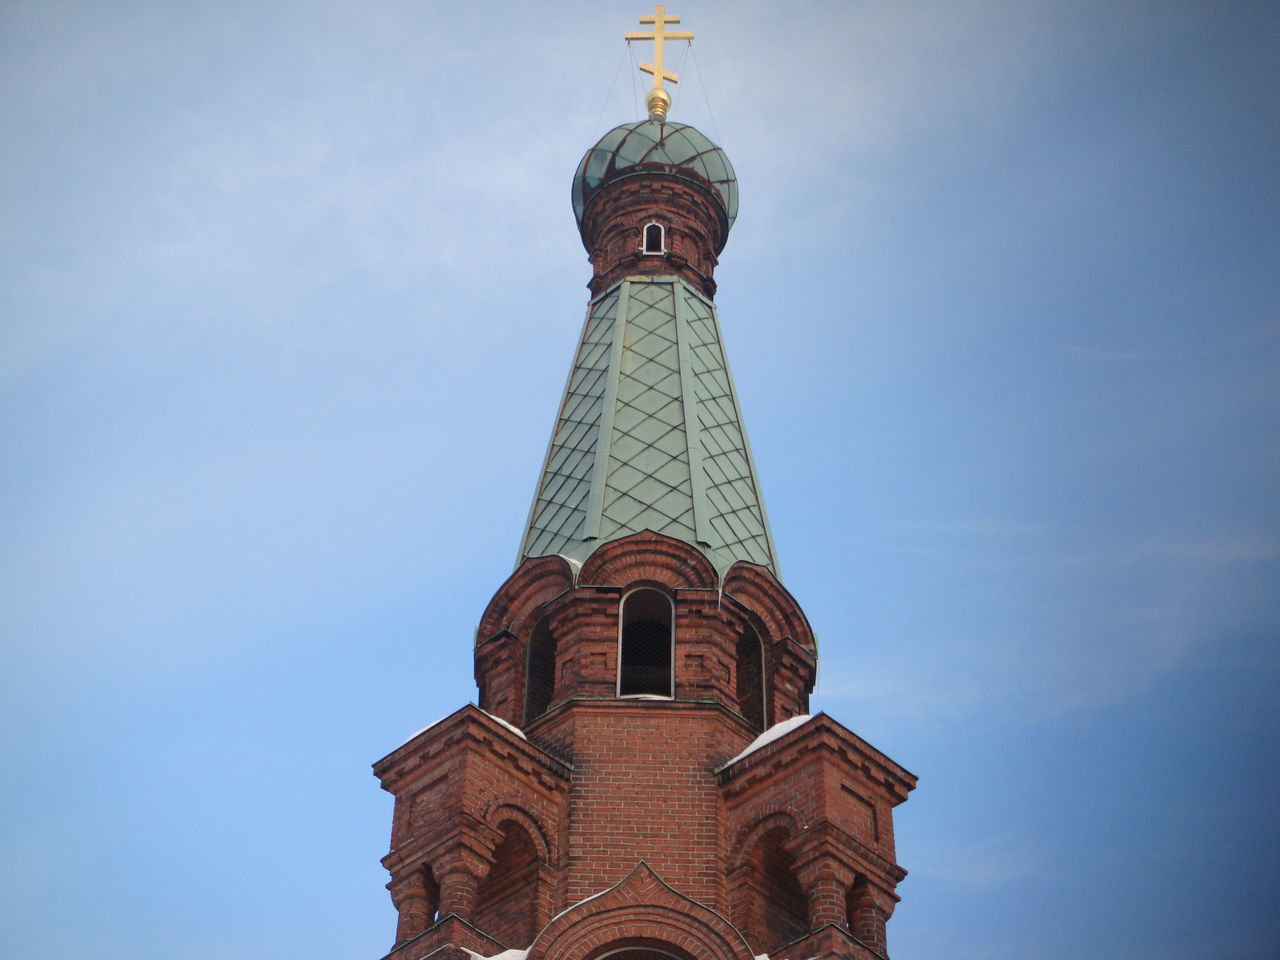 religion, spirituality, place of worship, low angle view, architecture, sky, no people, outdoors, day, building exterior